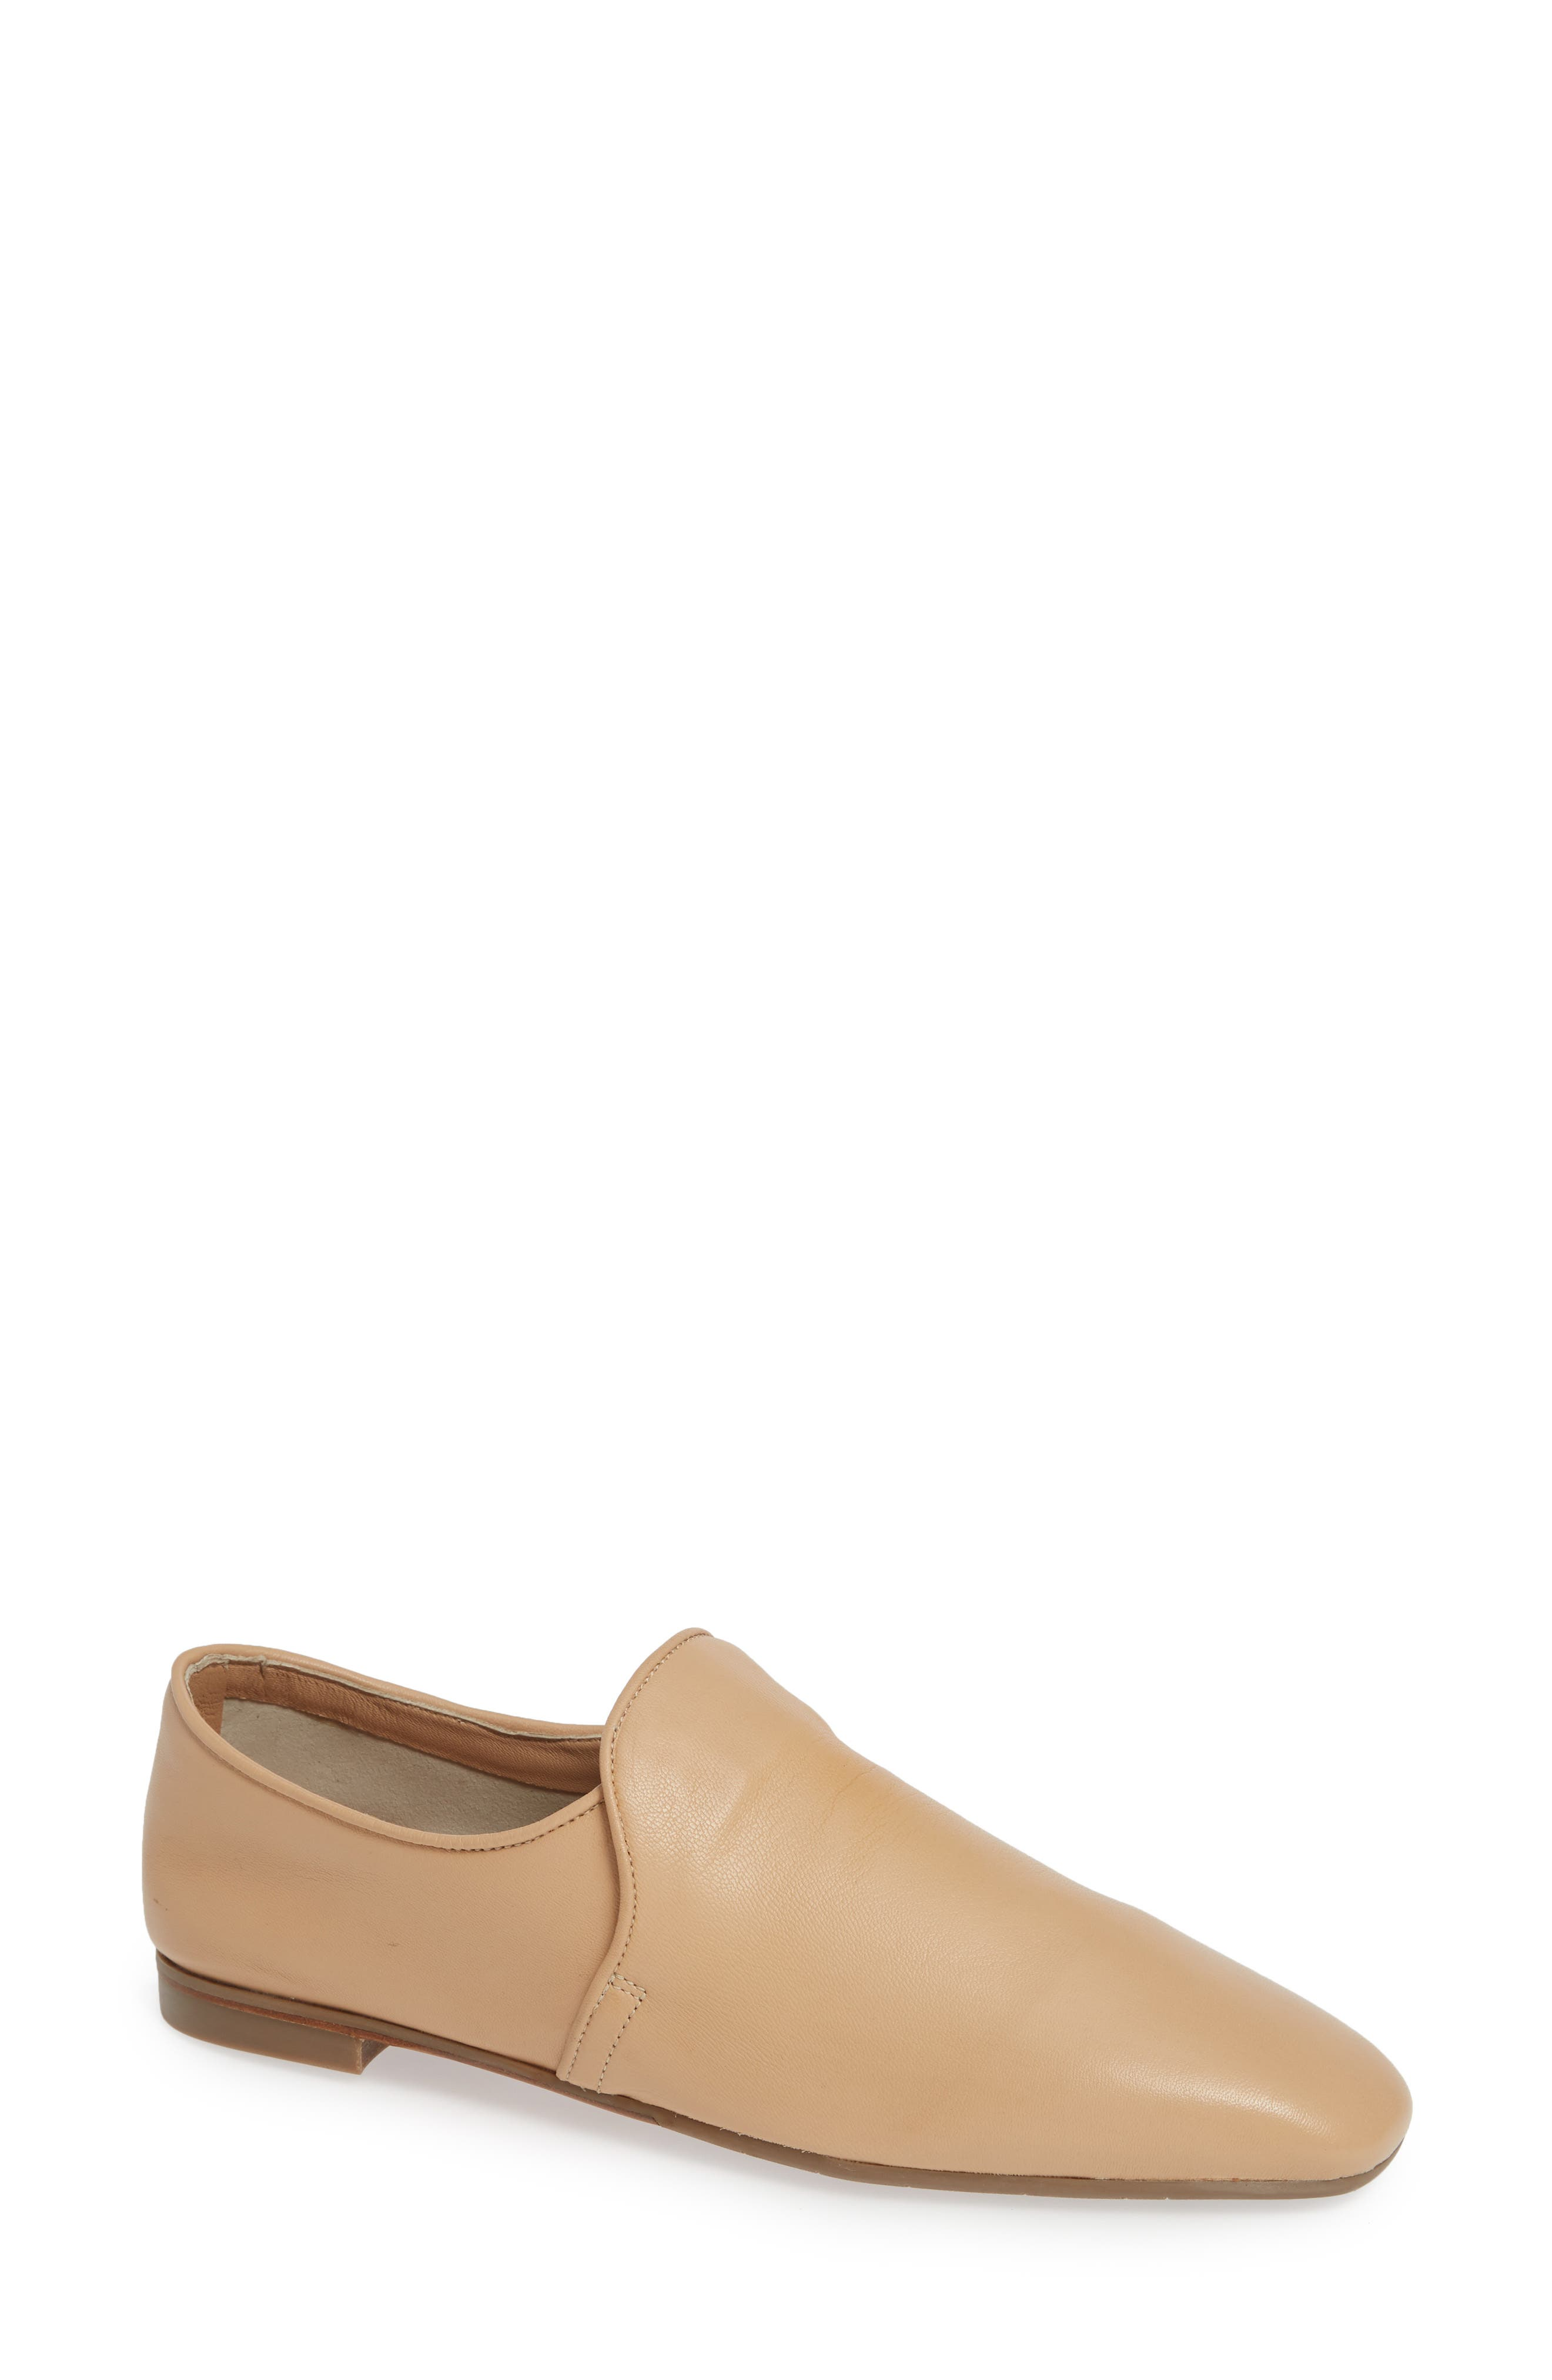 Revy Weatherporoof Loafer,                             Main thumbnail 1, color,                             NUDE NAPPA